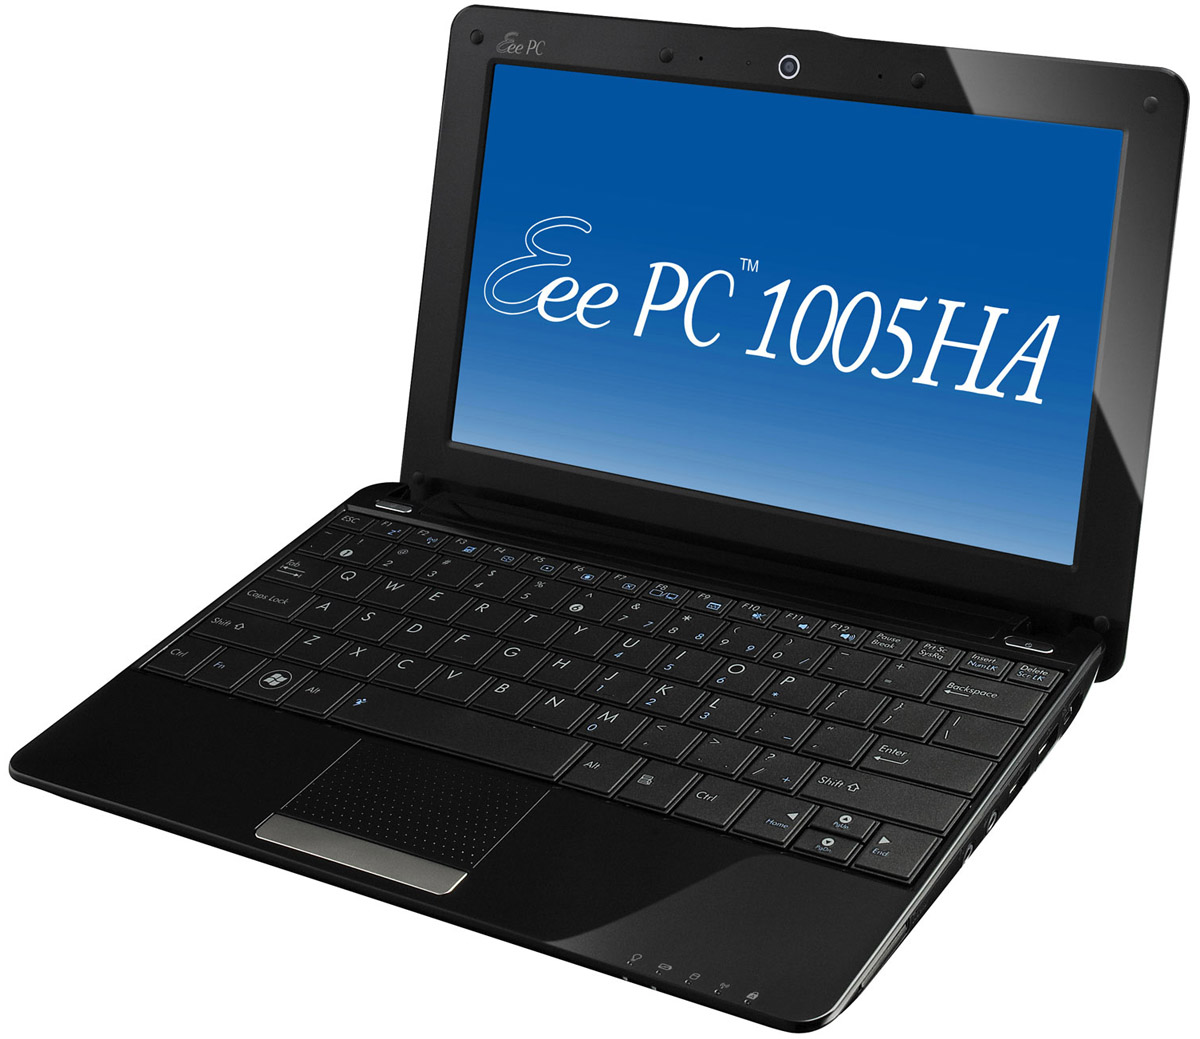 First Impression On Asus Eee Pc  book 1005ha also Irs Depreciation Rules Guidelines For 2015 in addition Quality Circles In Schools further ViewProduct besides Wholesale Games School. on teacher audio system